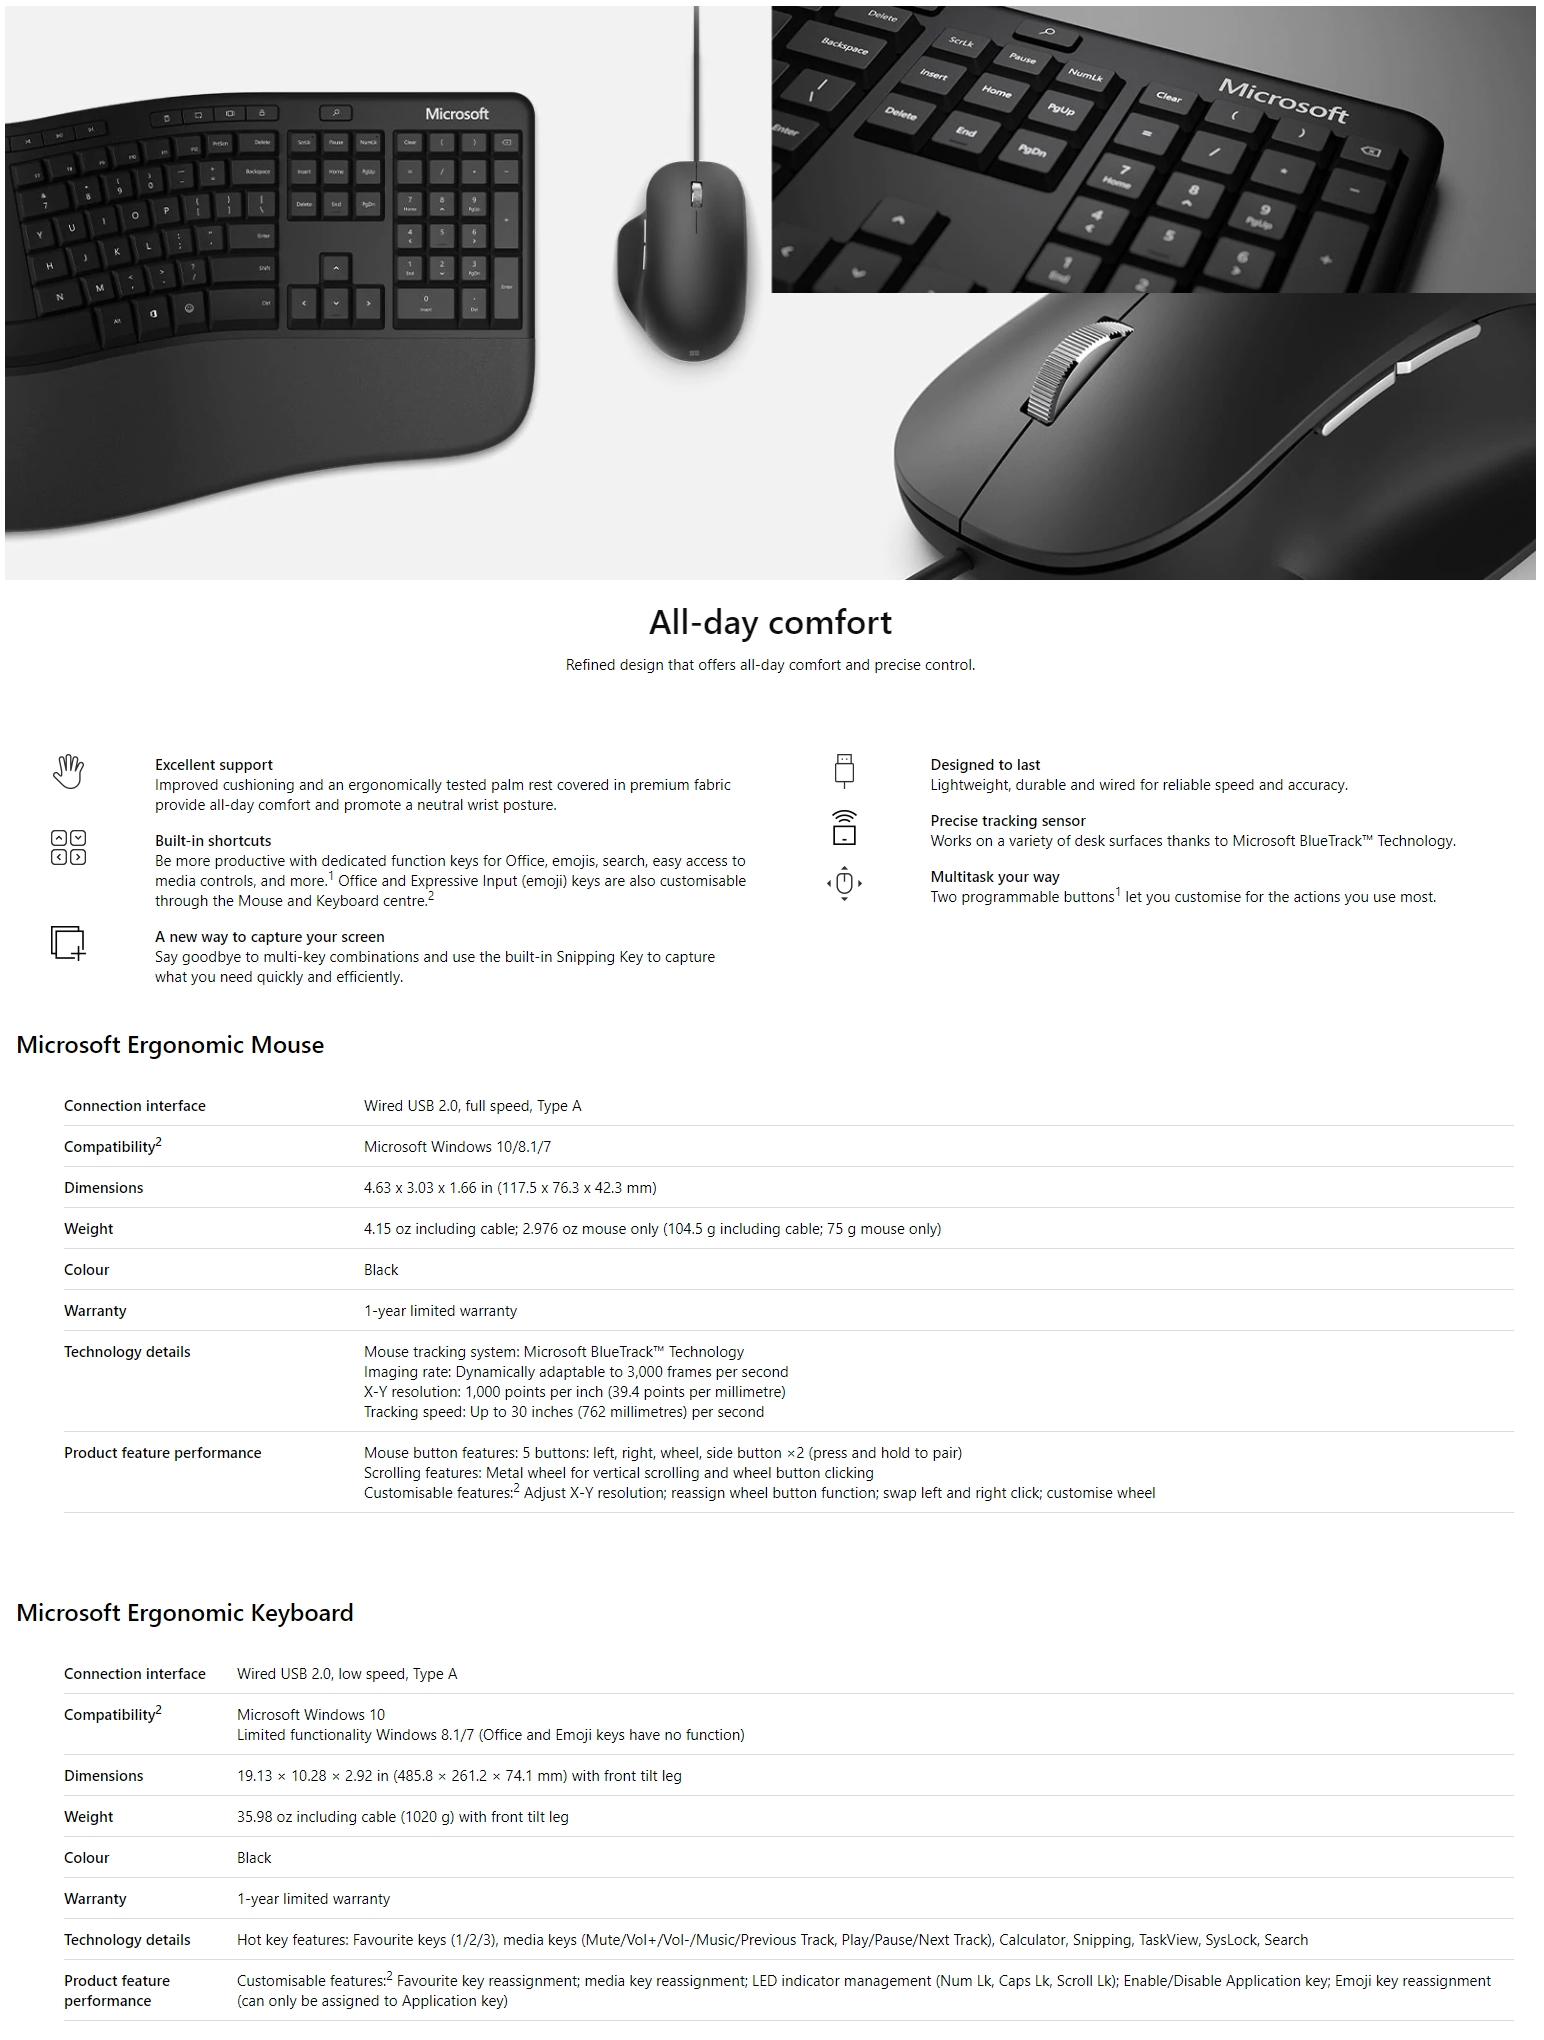 A large marketing image providing additional information about the product Microsoft Ergonomic Wired Desktop Keyboard & Mouse Kit - Additional alt info not provided